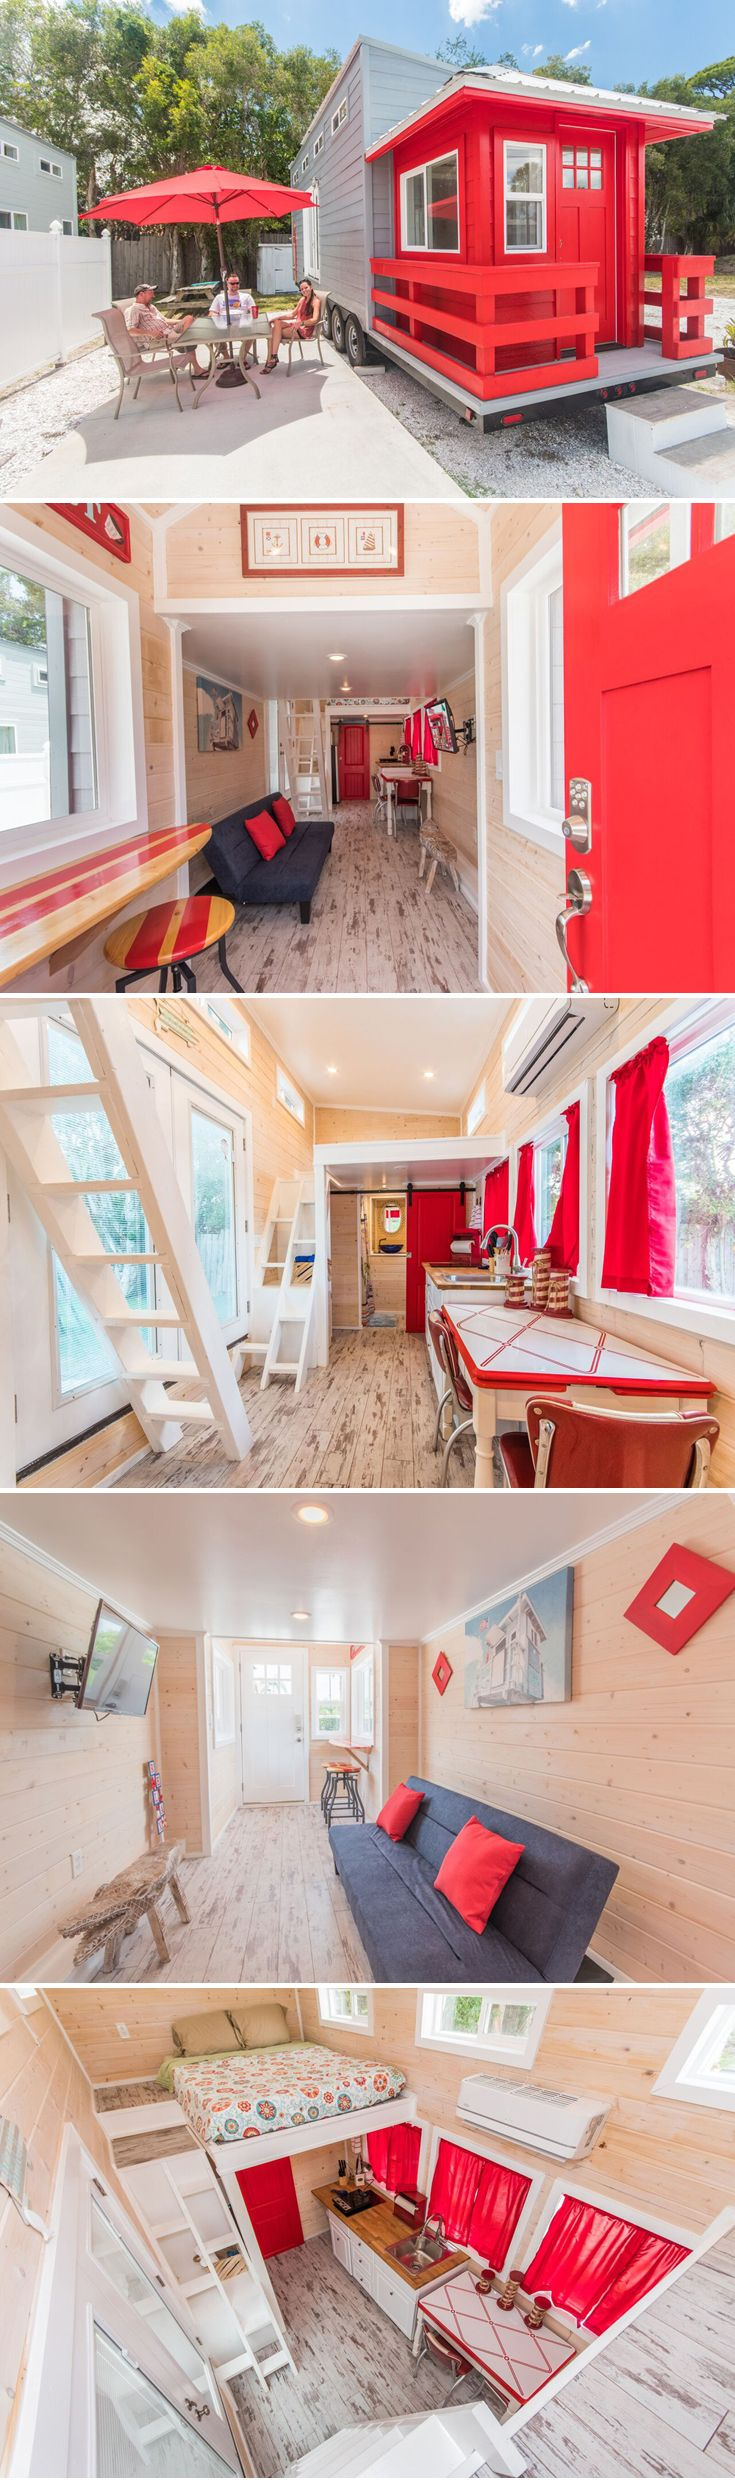 Modeled after Siesta Key Beach's lifeguard stands is the Red Lifeguard Stand tiny house, available for nightly rental at Tiny Siesta in Sarasota, Florida.